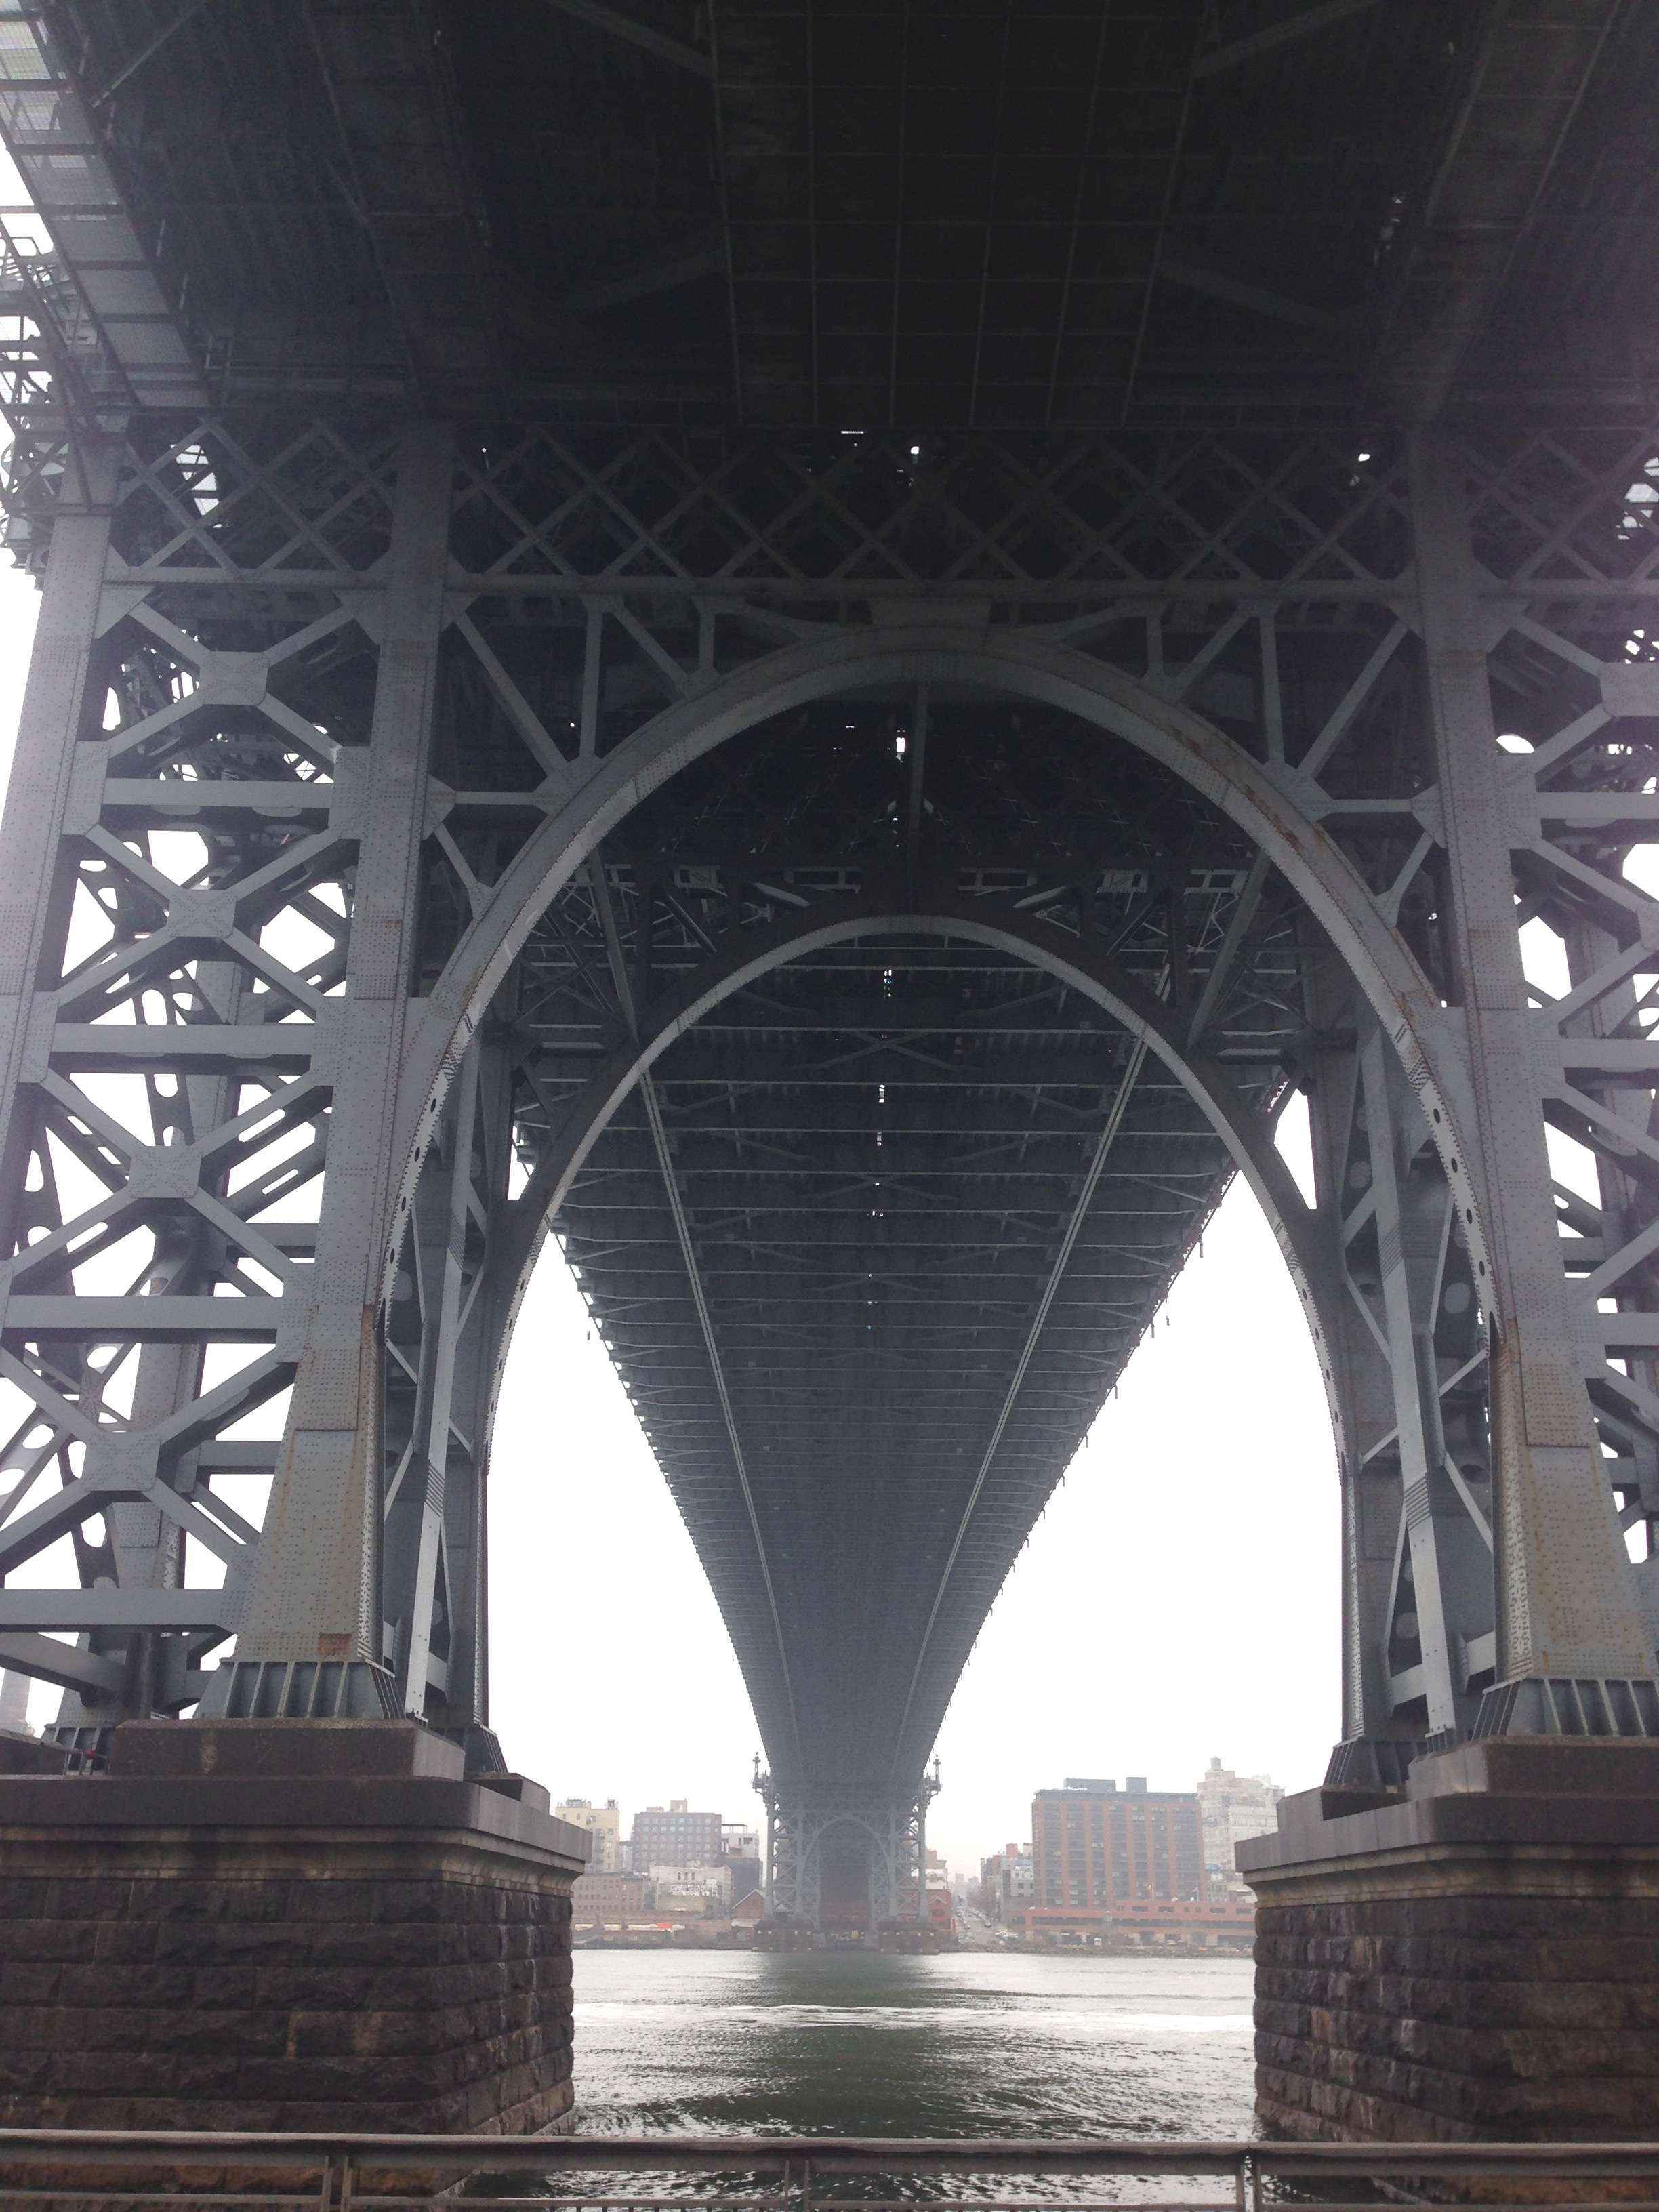 Underneath the Williamsburg Bridge.